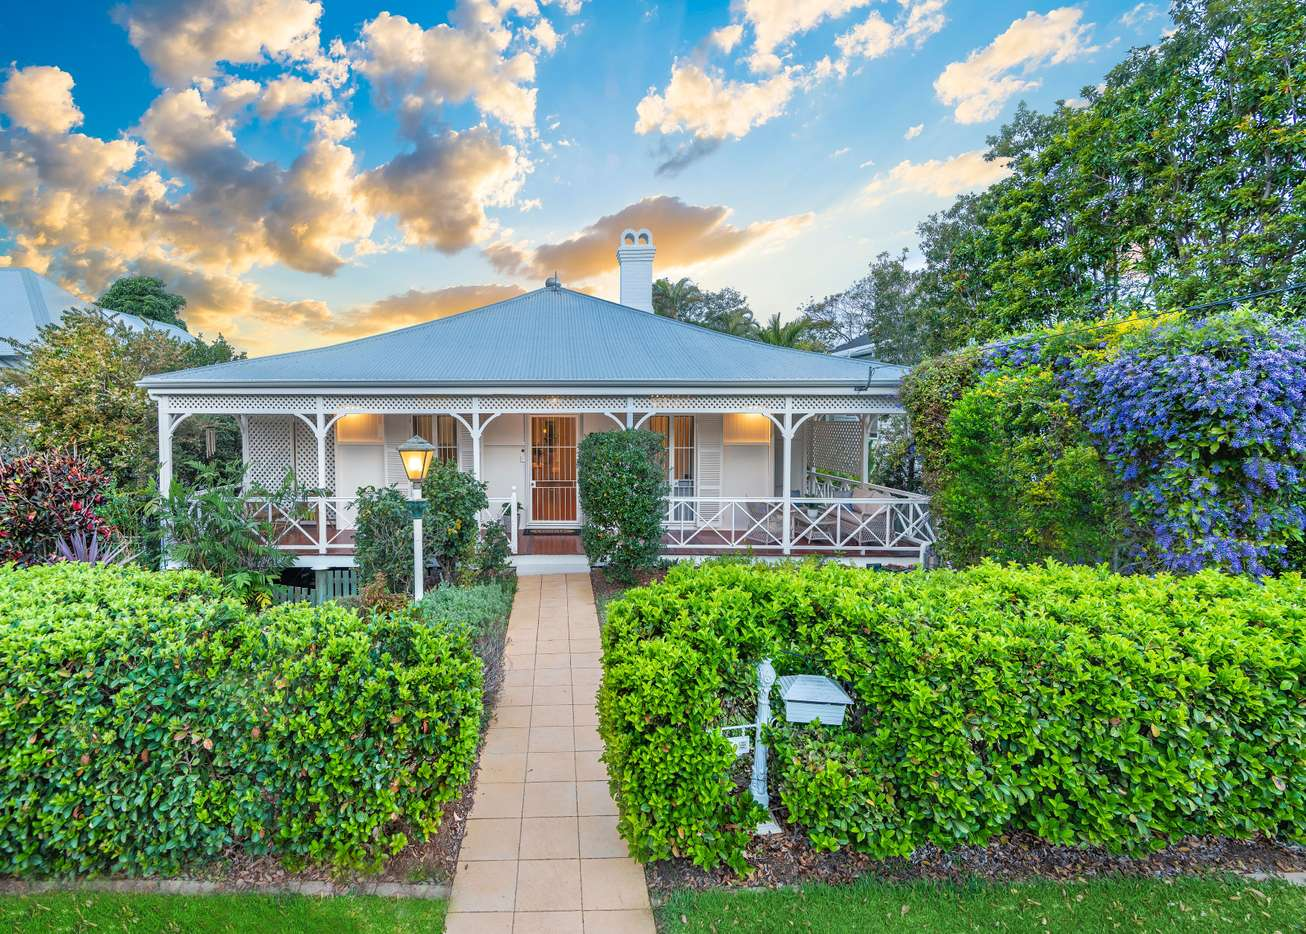 Main view of Homely house listing, 15 Dublin Street, Clayfield, QLD 4011